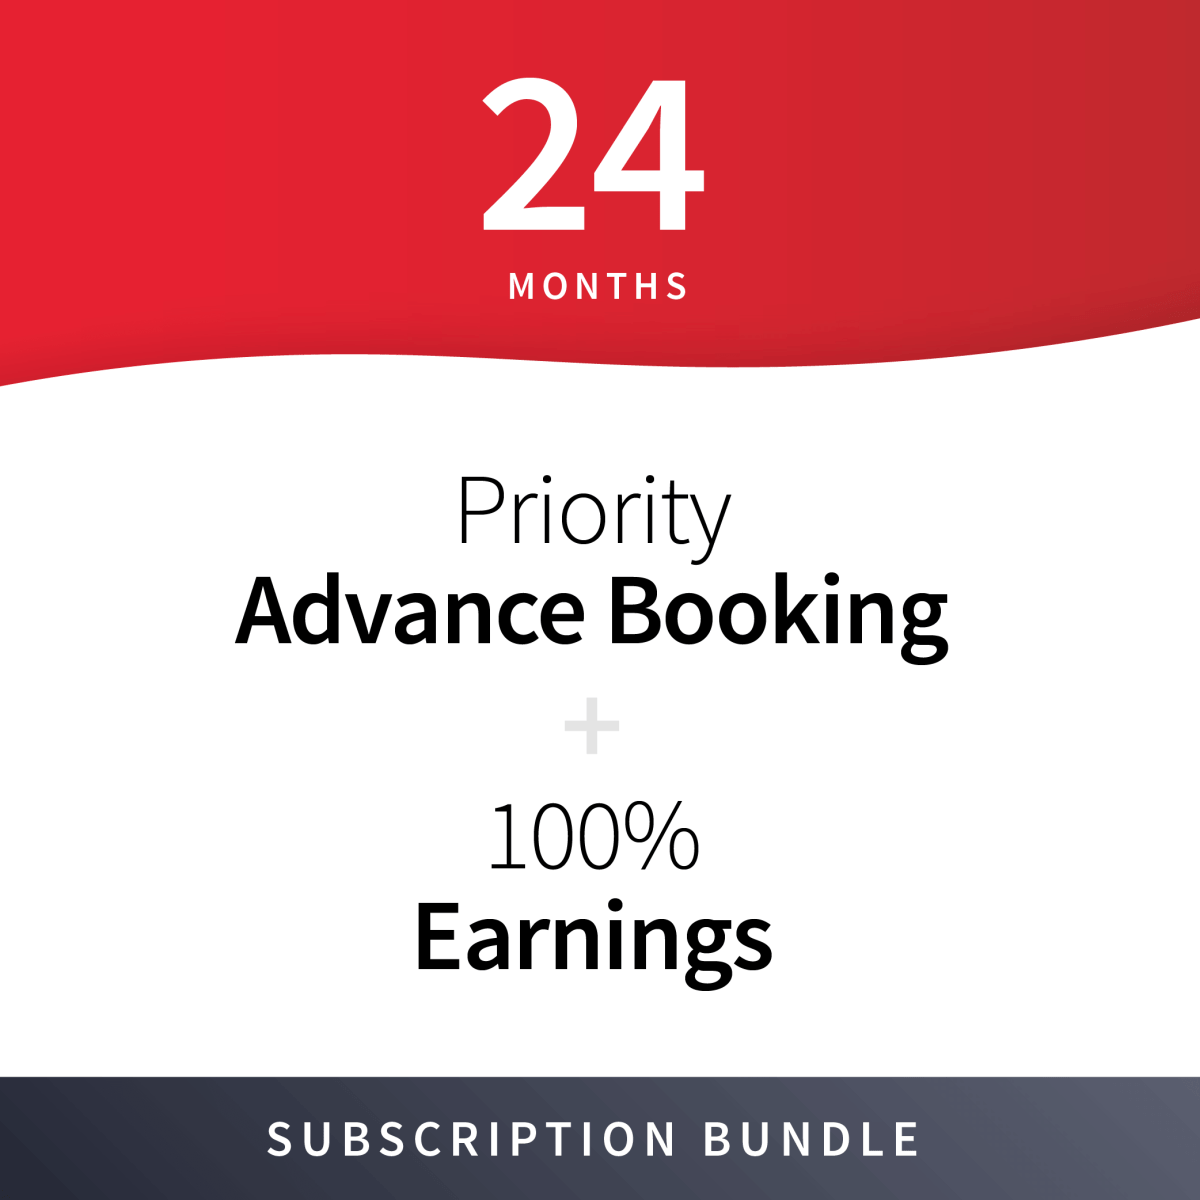 100% Earnings + Priority Advance Booking Subscription Bundle - 24 Months 3